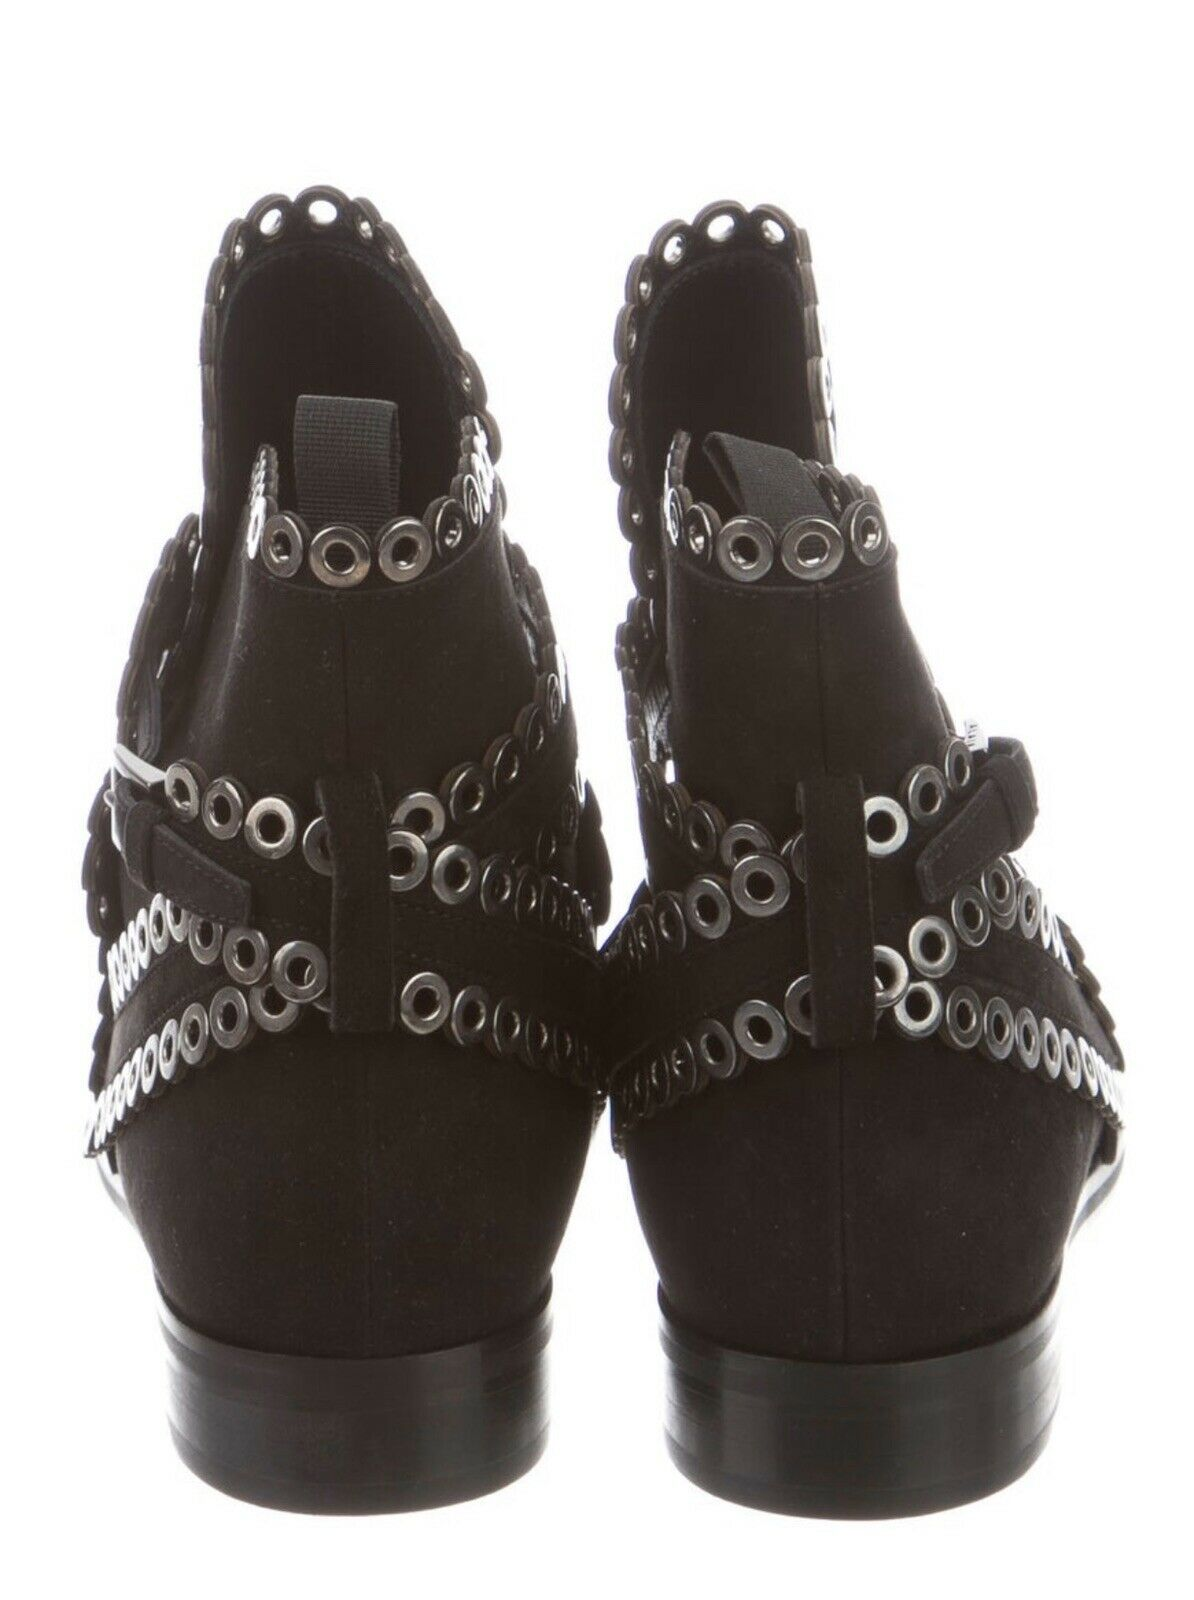 AZZEDINE ALAIA Black Suede Grommet Ankle Boots Si… - image 4